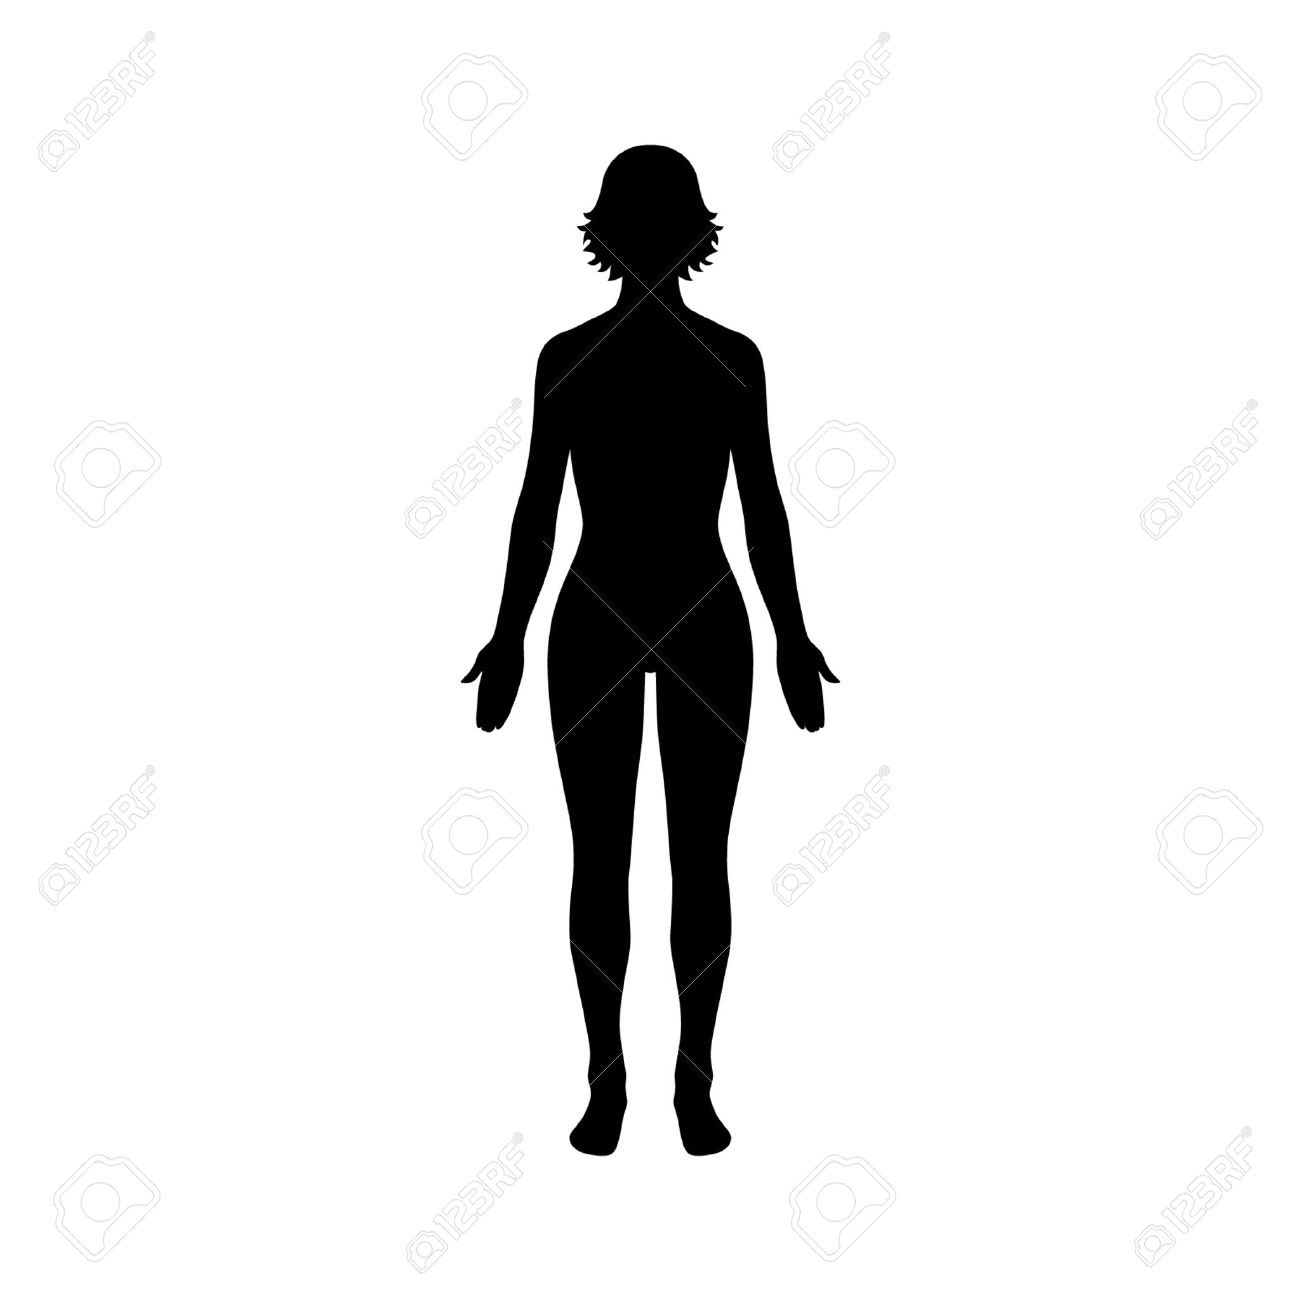 Female human body flat icon for apps and website.